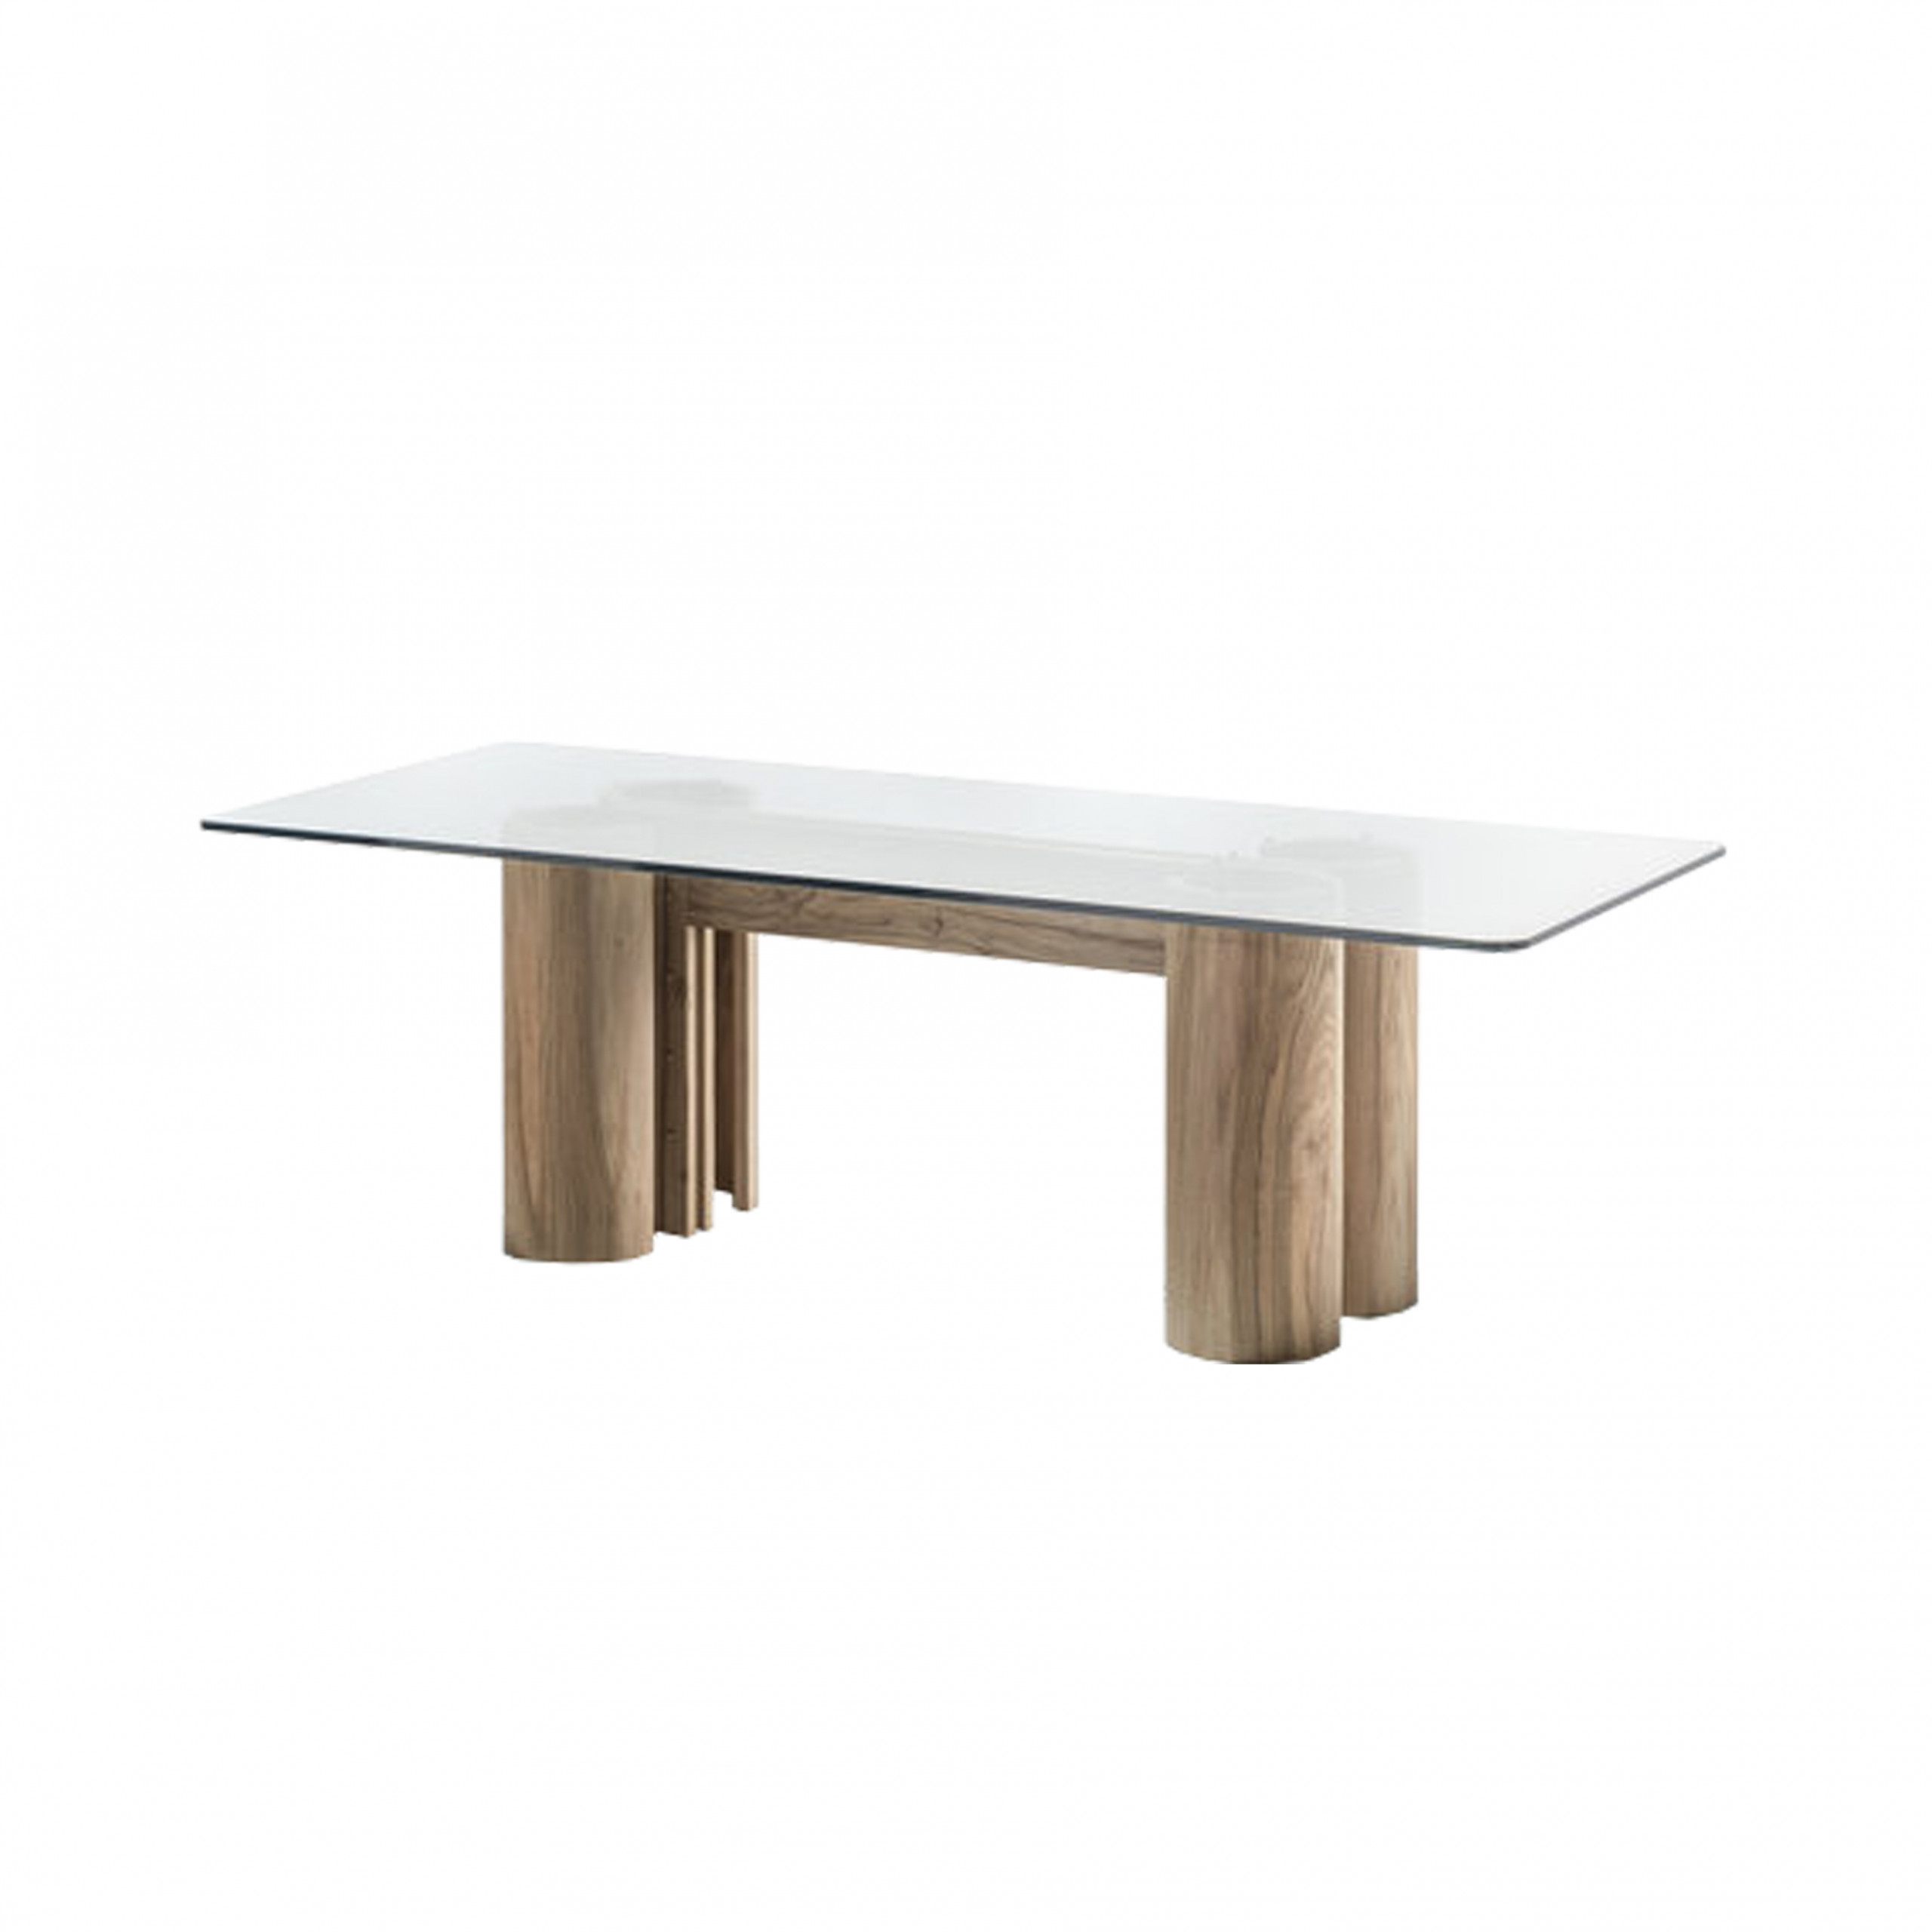 Ionico Dining Table - This modern table has a rectangular silhouette distinguished for its distinct architectural flair. The understated base is made of walnut and comprises four-column legs with a polished finish connected at the centre by a double, U-shaped element. Offering a visually striking touch, the extra-clear crystal tabletop (19 mm thickness) seems to float over the wooden base. An elegant choice for any home, this table can effortlessly transition from classic to contemporary interiors, adding modern-rustic allure to any dining room decor.